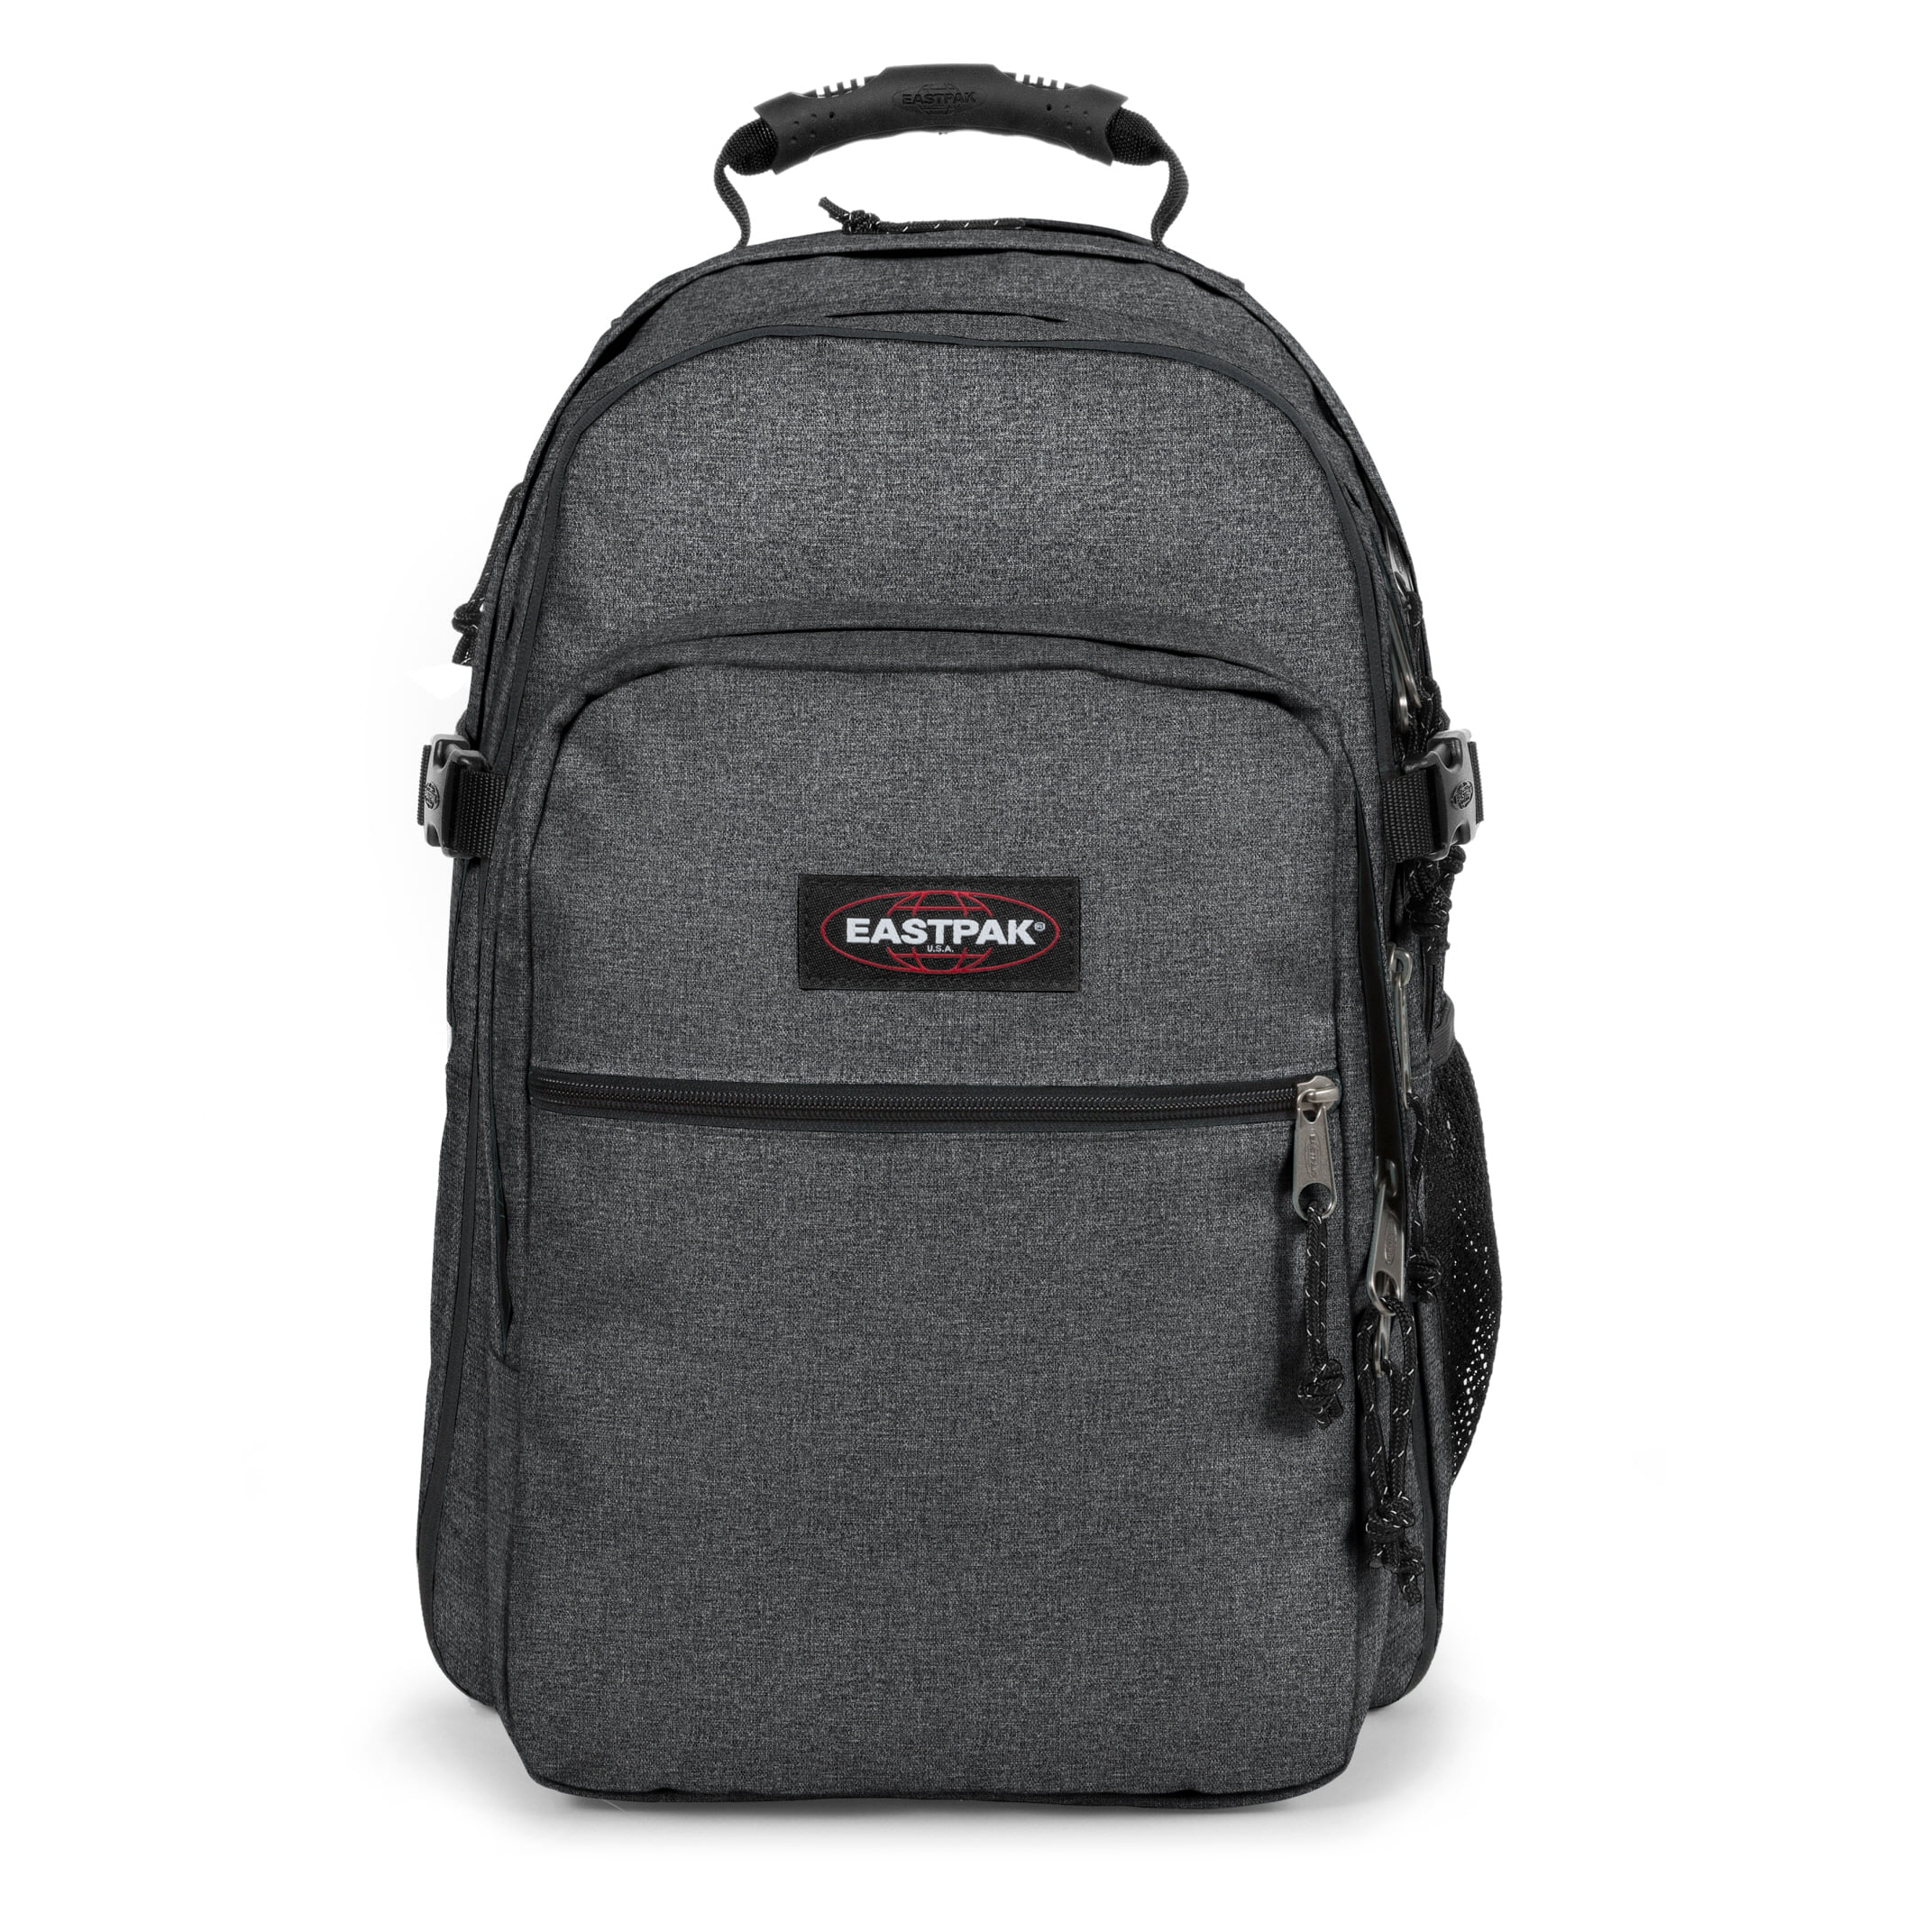 [EASTPAK] AUTHENTIC 백팩 튜터 EIABA10 77H